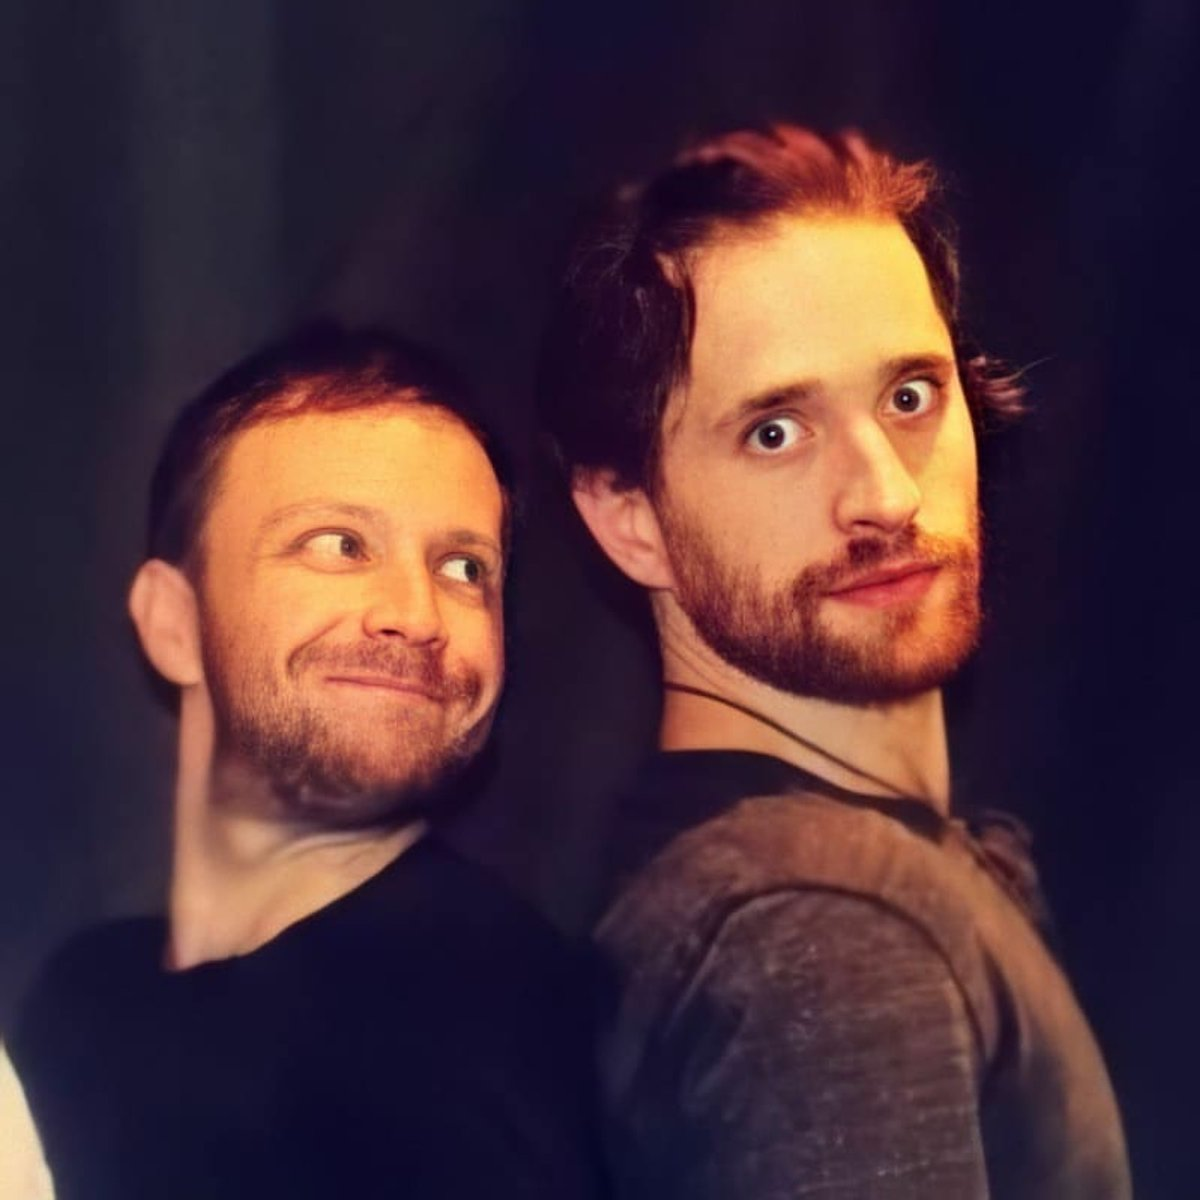 I love them so much!!!  #danielplatzman #drummer #violinist #singer #songwriter #musician #benmckee #bassist #imaginedragons #friendspic.twitter.com/xzw0yug8rj